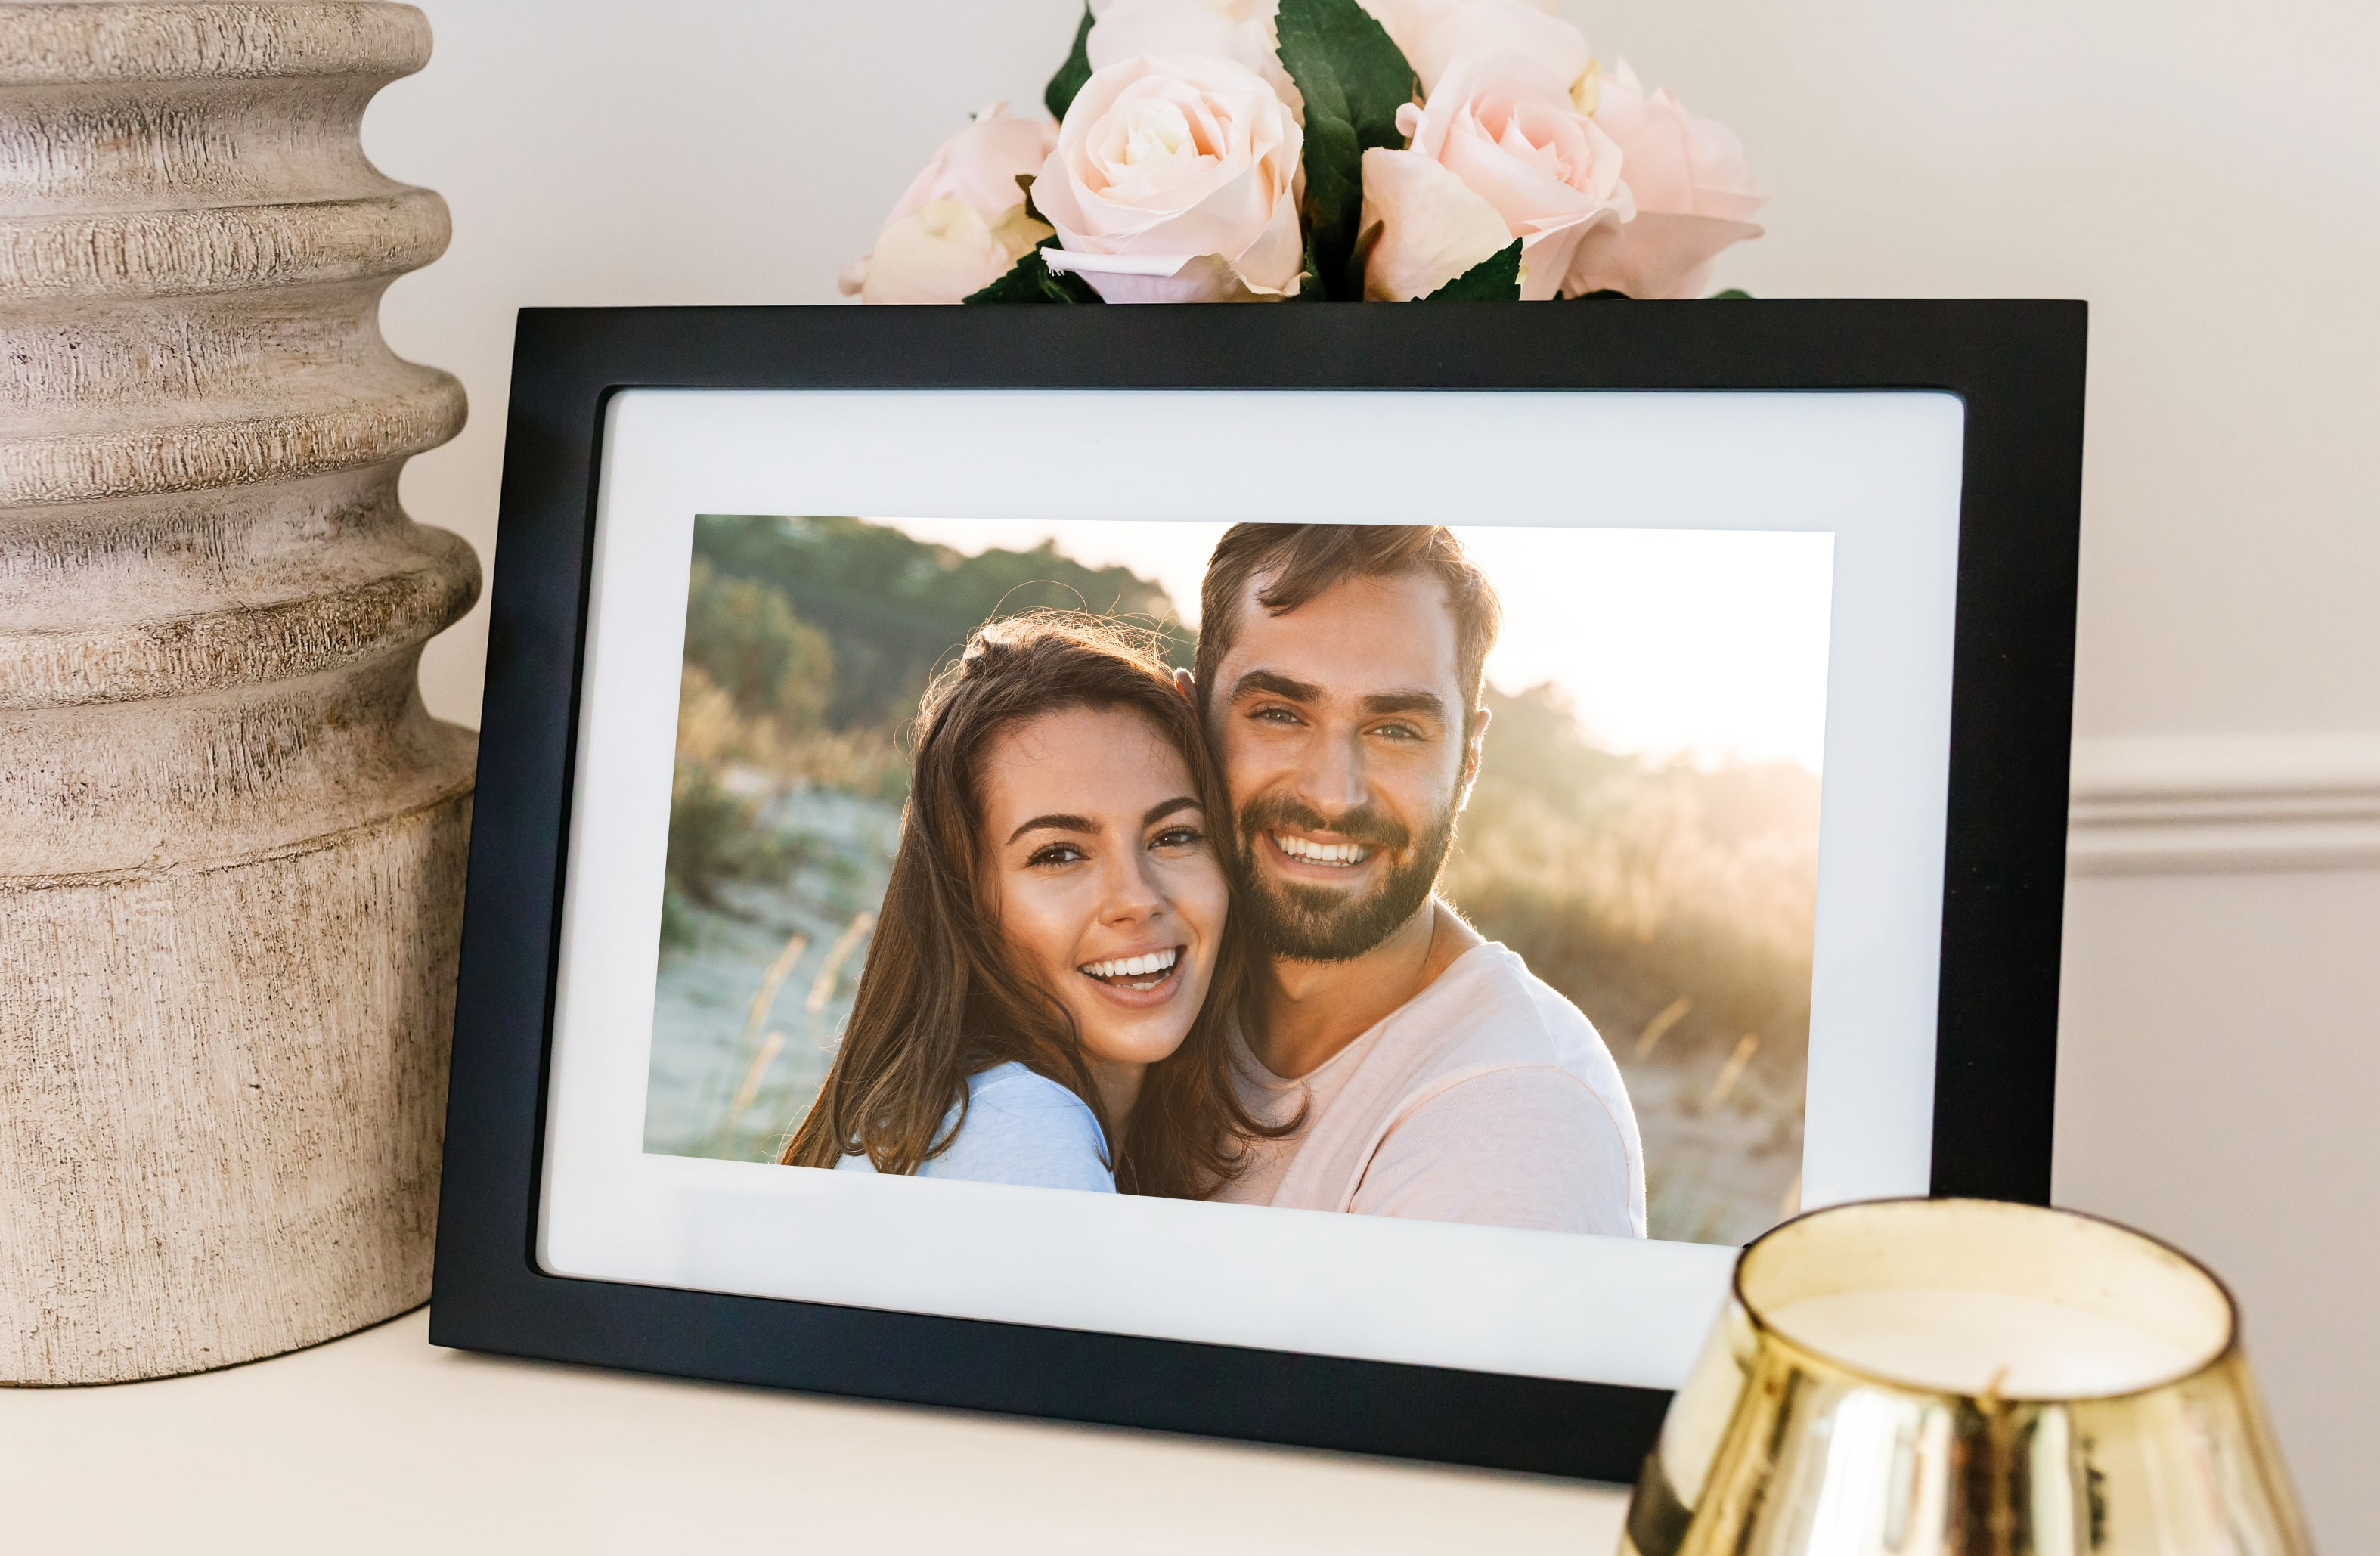 This Digital Frame Has A Magical Feature That Makes It The Perfect Valentine's Day Gift